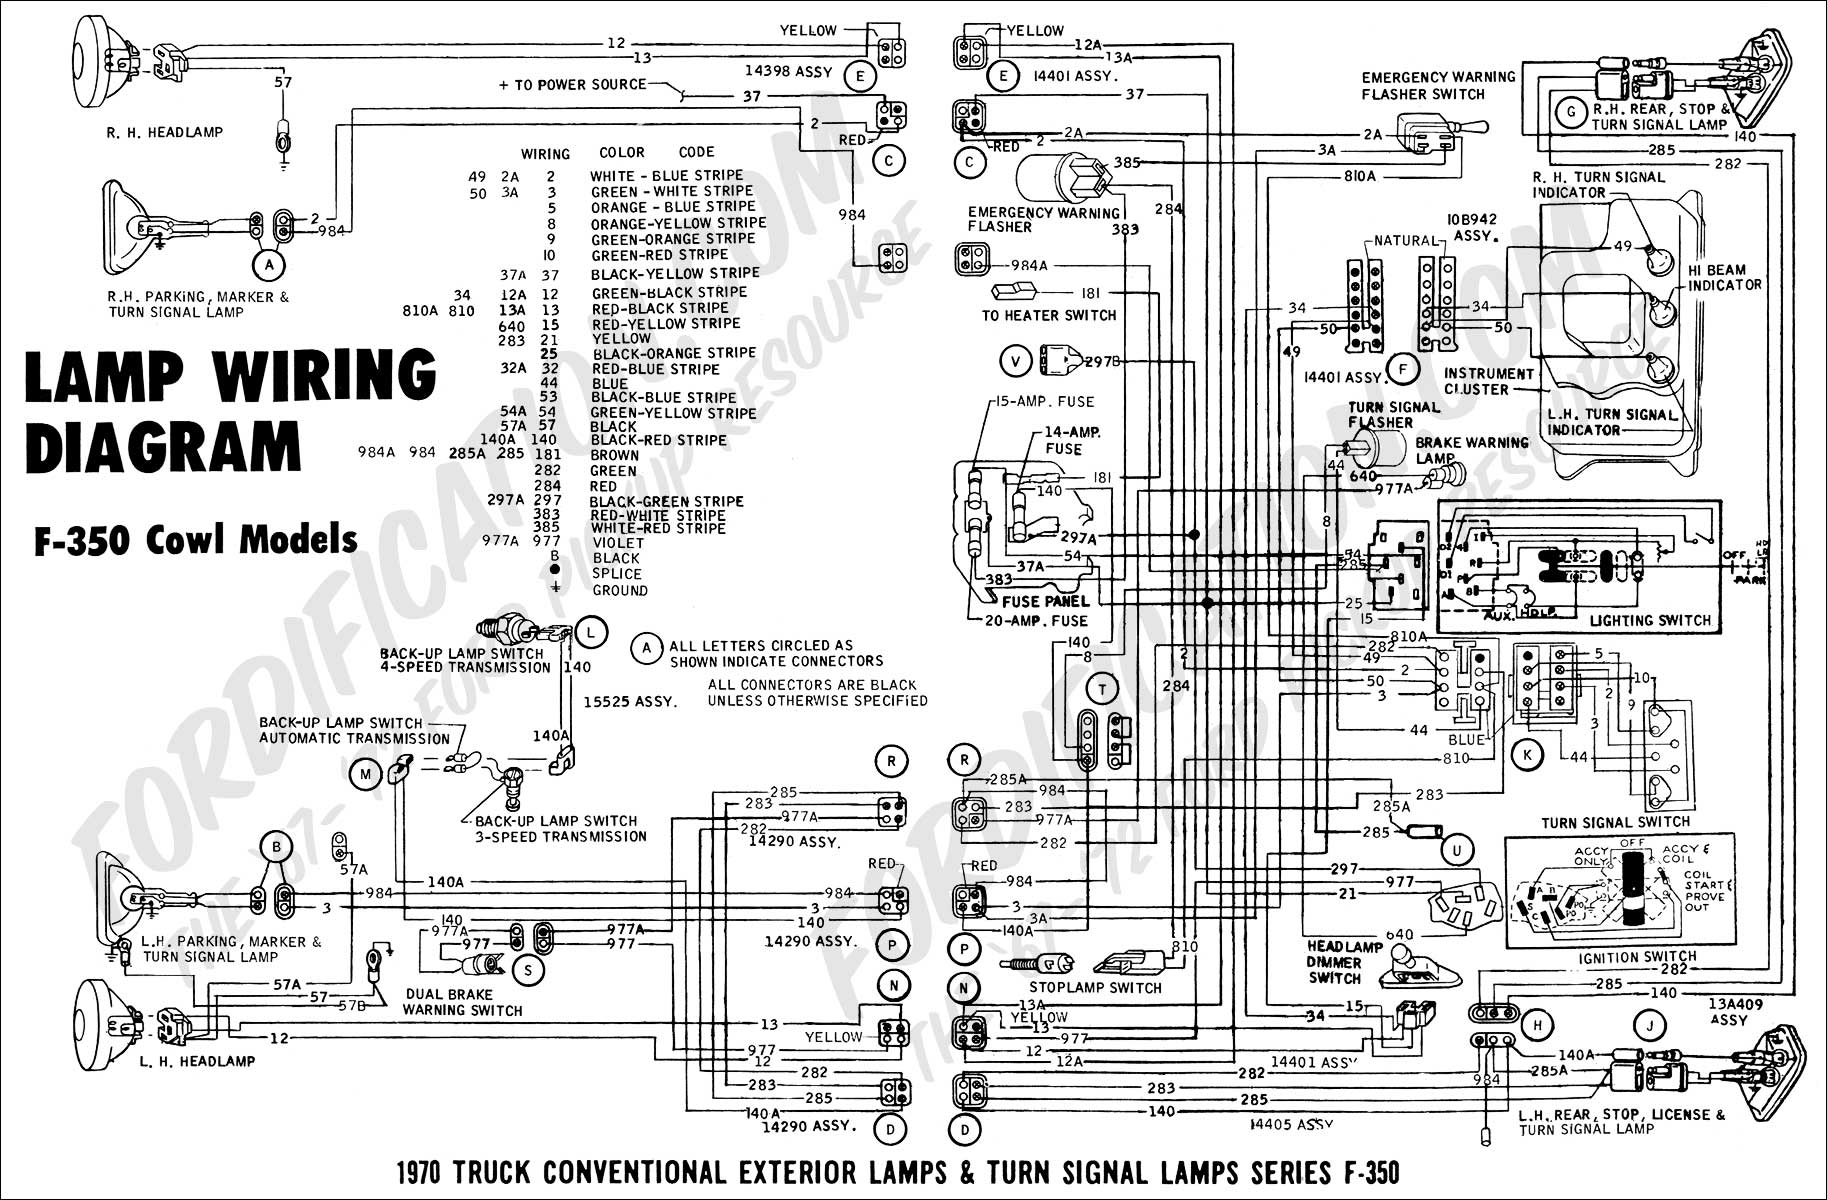 72 ford f100 dash wiring diagram for dixie air horns 1999 f250 dome light switch autos post